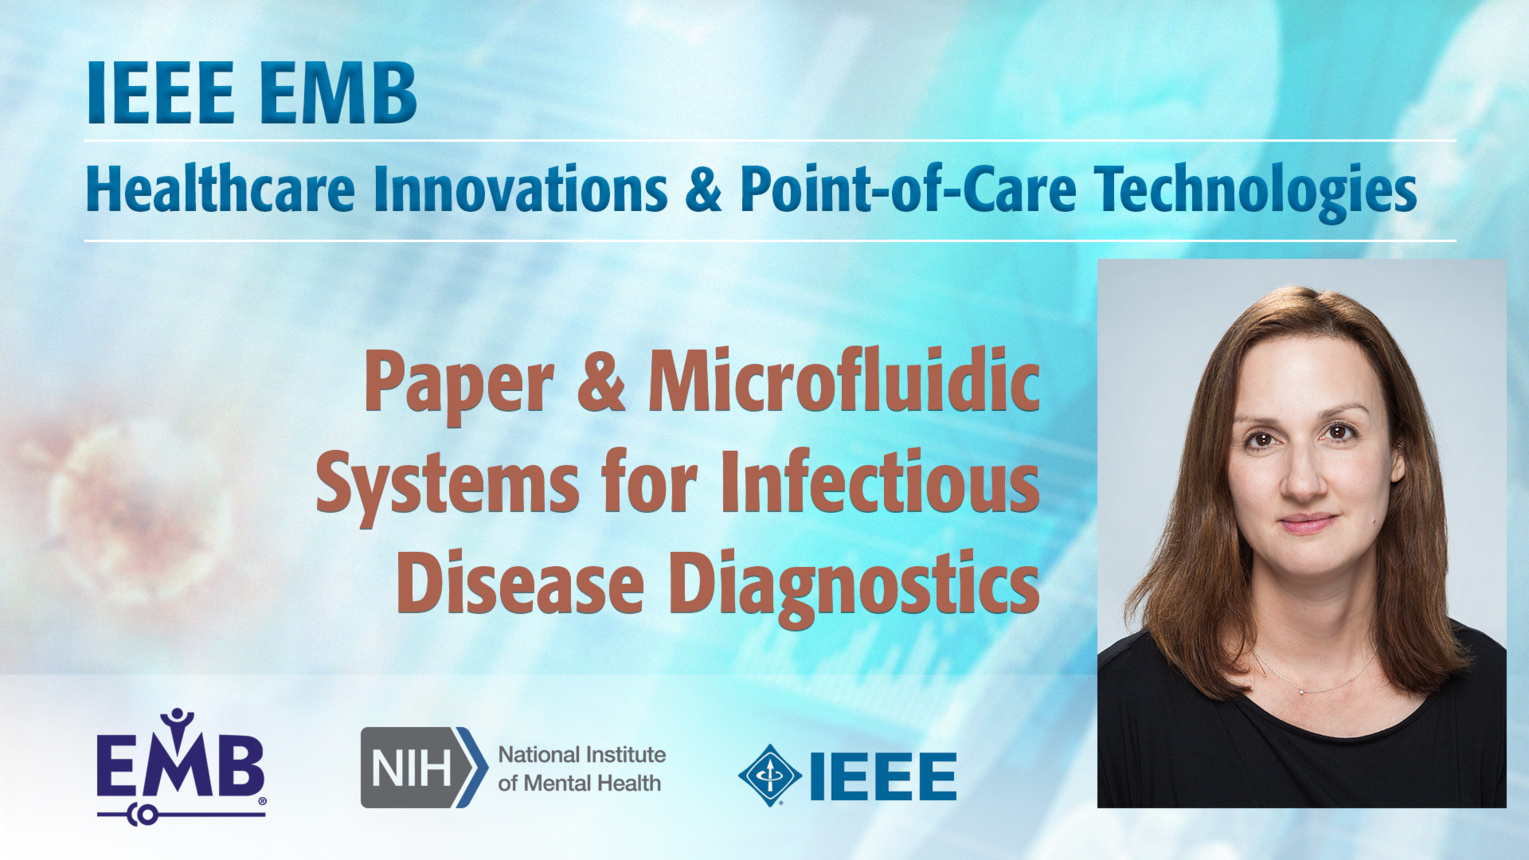 Paper & Microfluidic Systems for Infectious Disease Diagnostics - Catherine Klapperich - IEEE EMBS at NIH, 2019